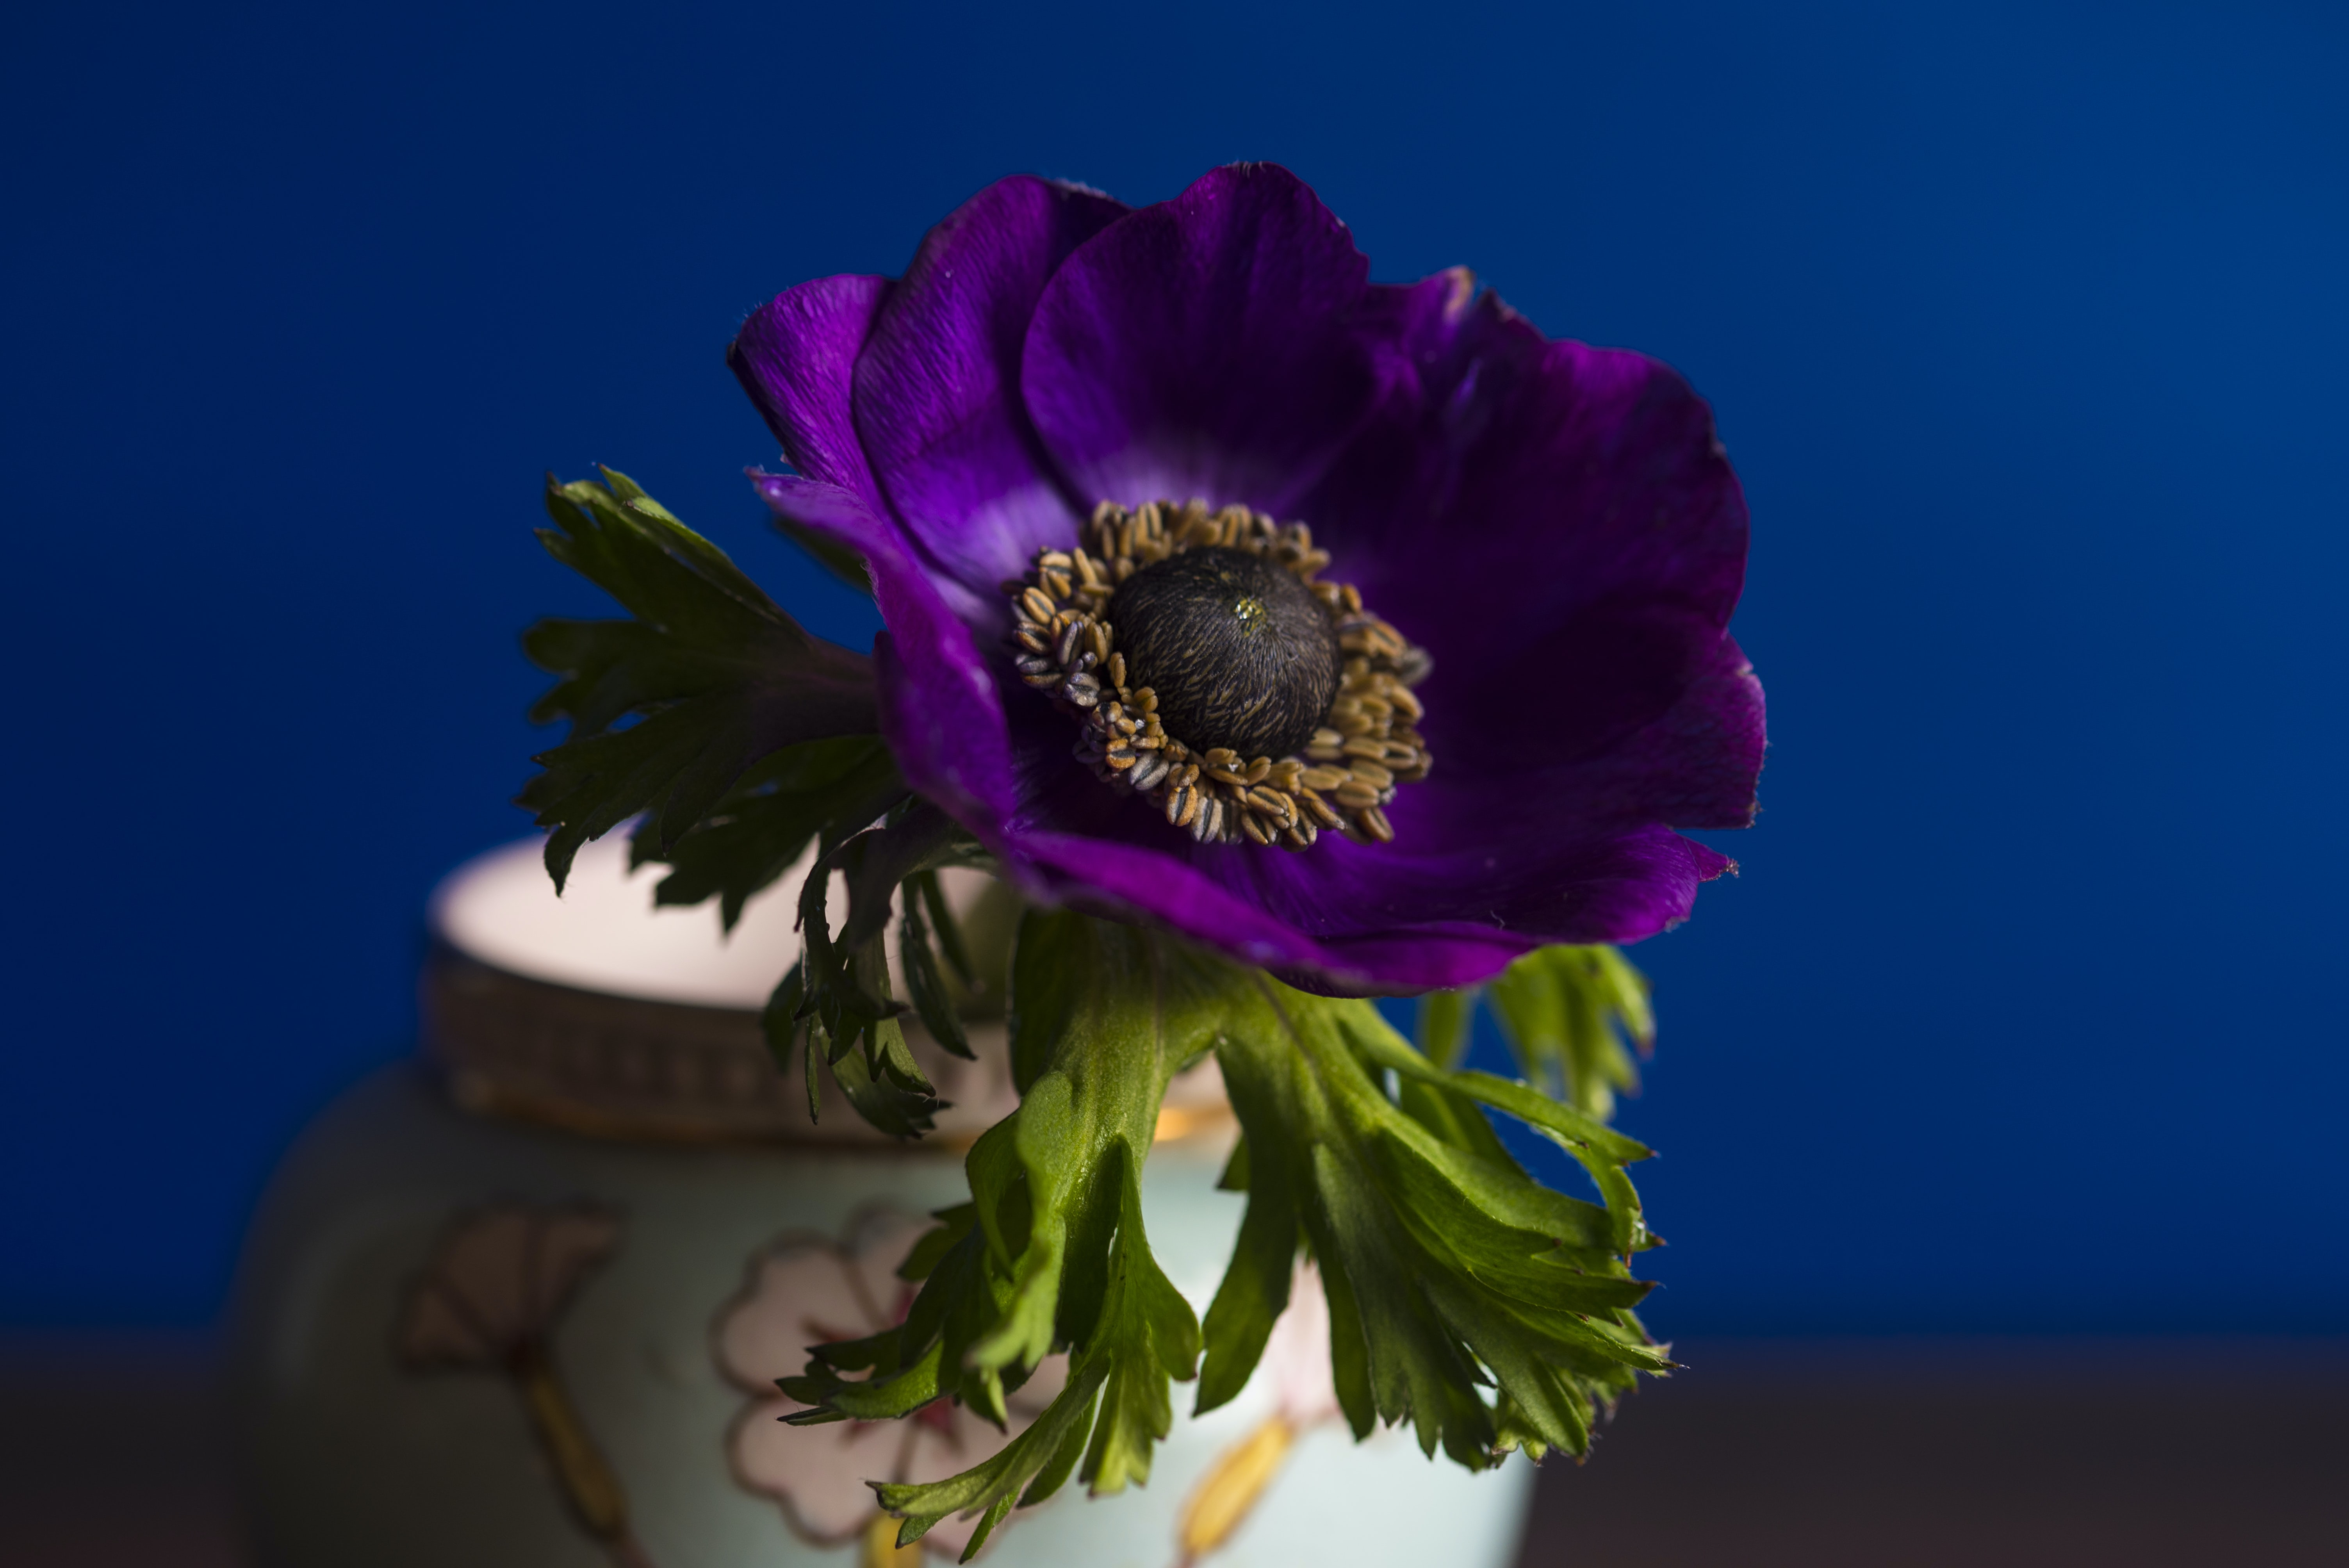 Close-up of a dark purple flower in a floral vase